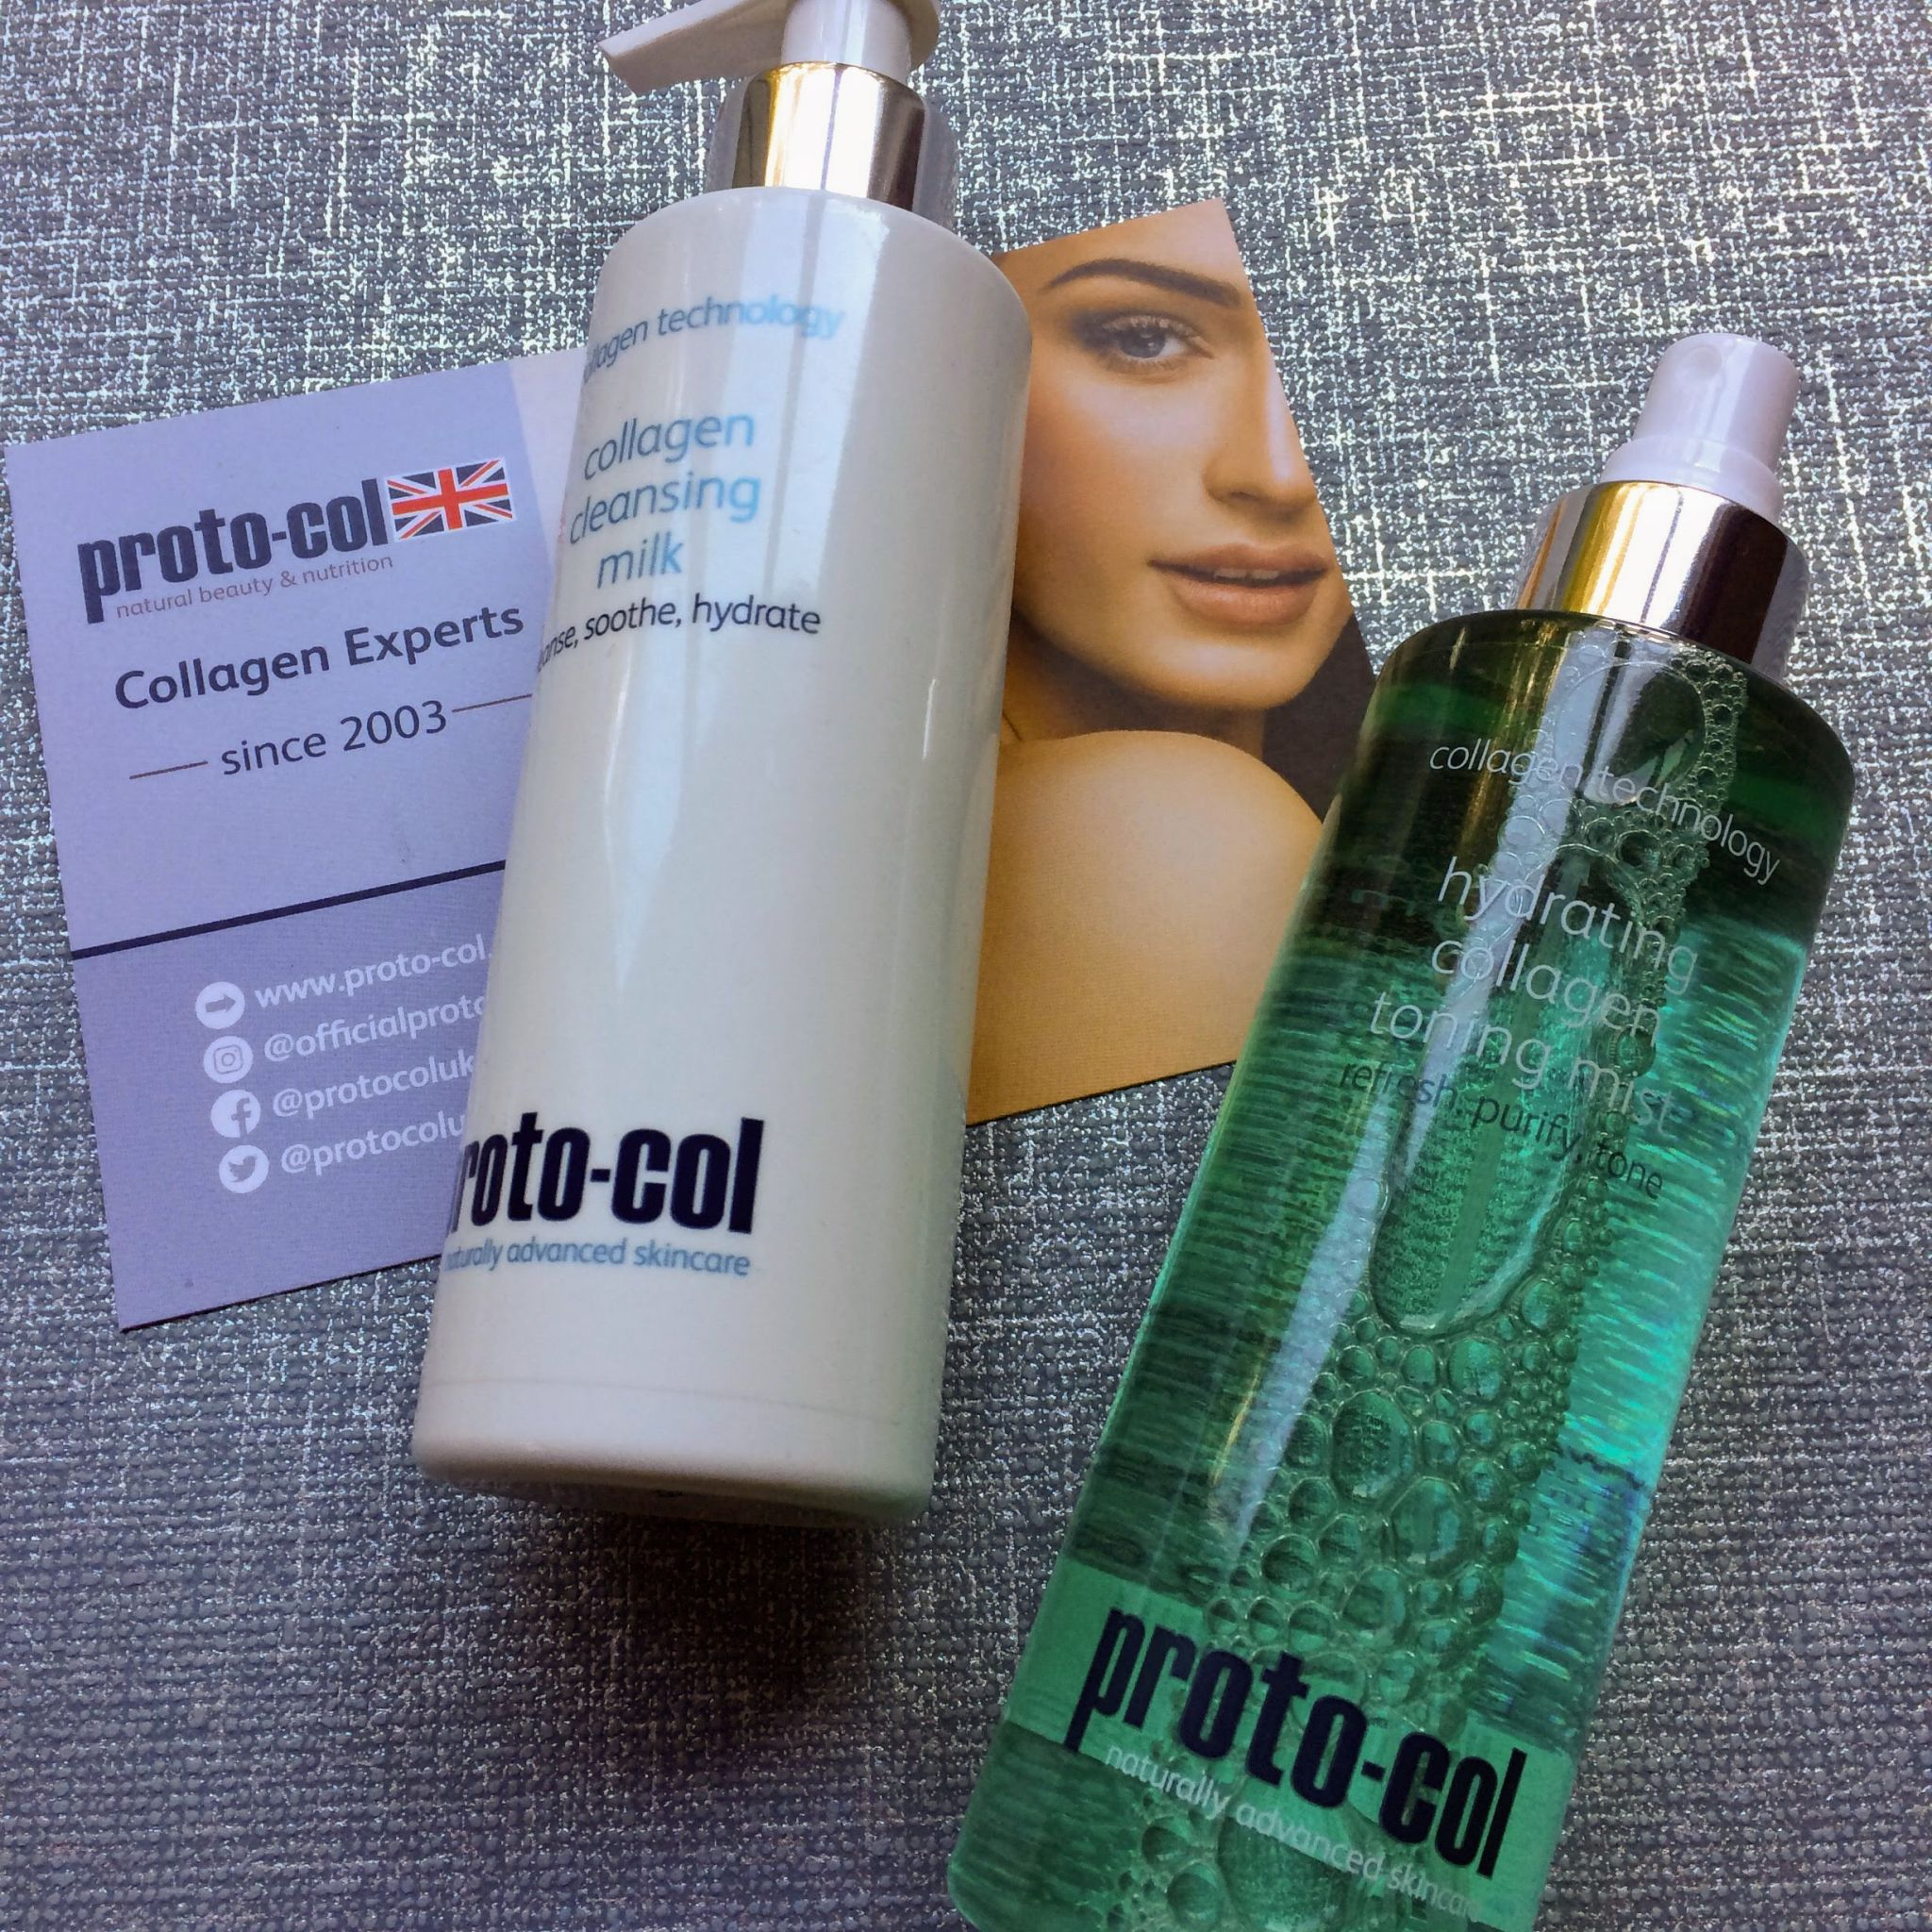 Proto-col Collagen Hydrating Tonmng Mist